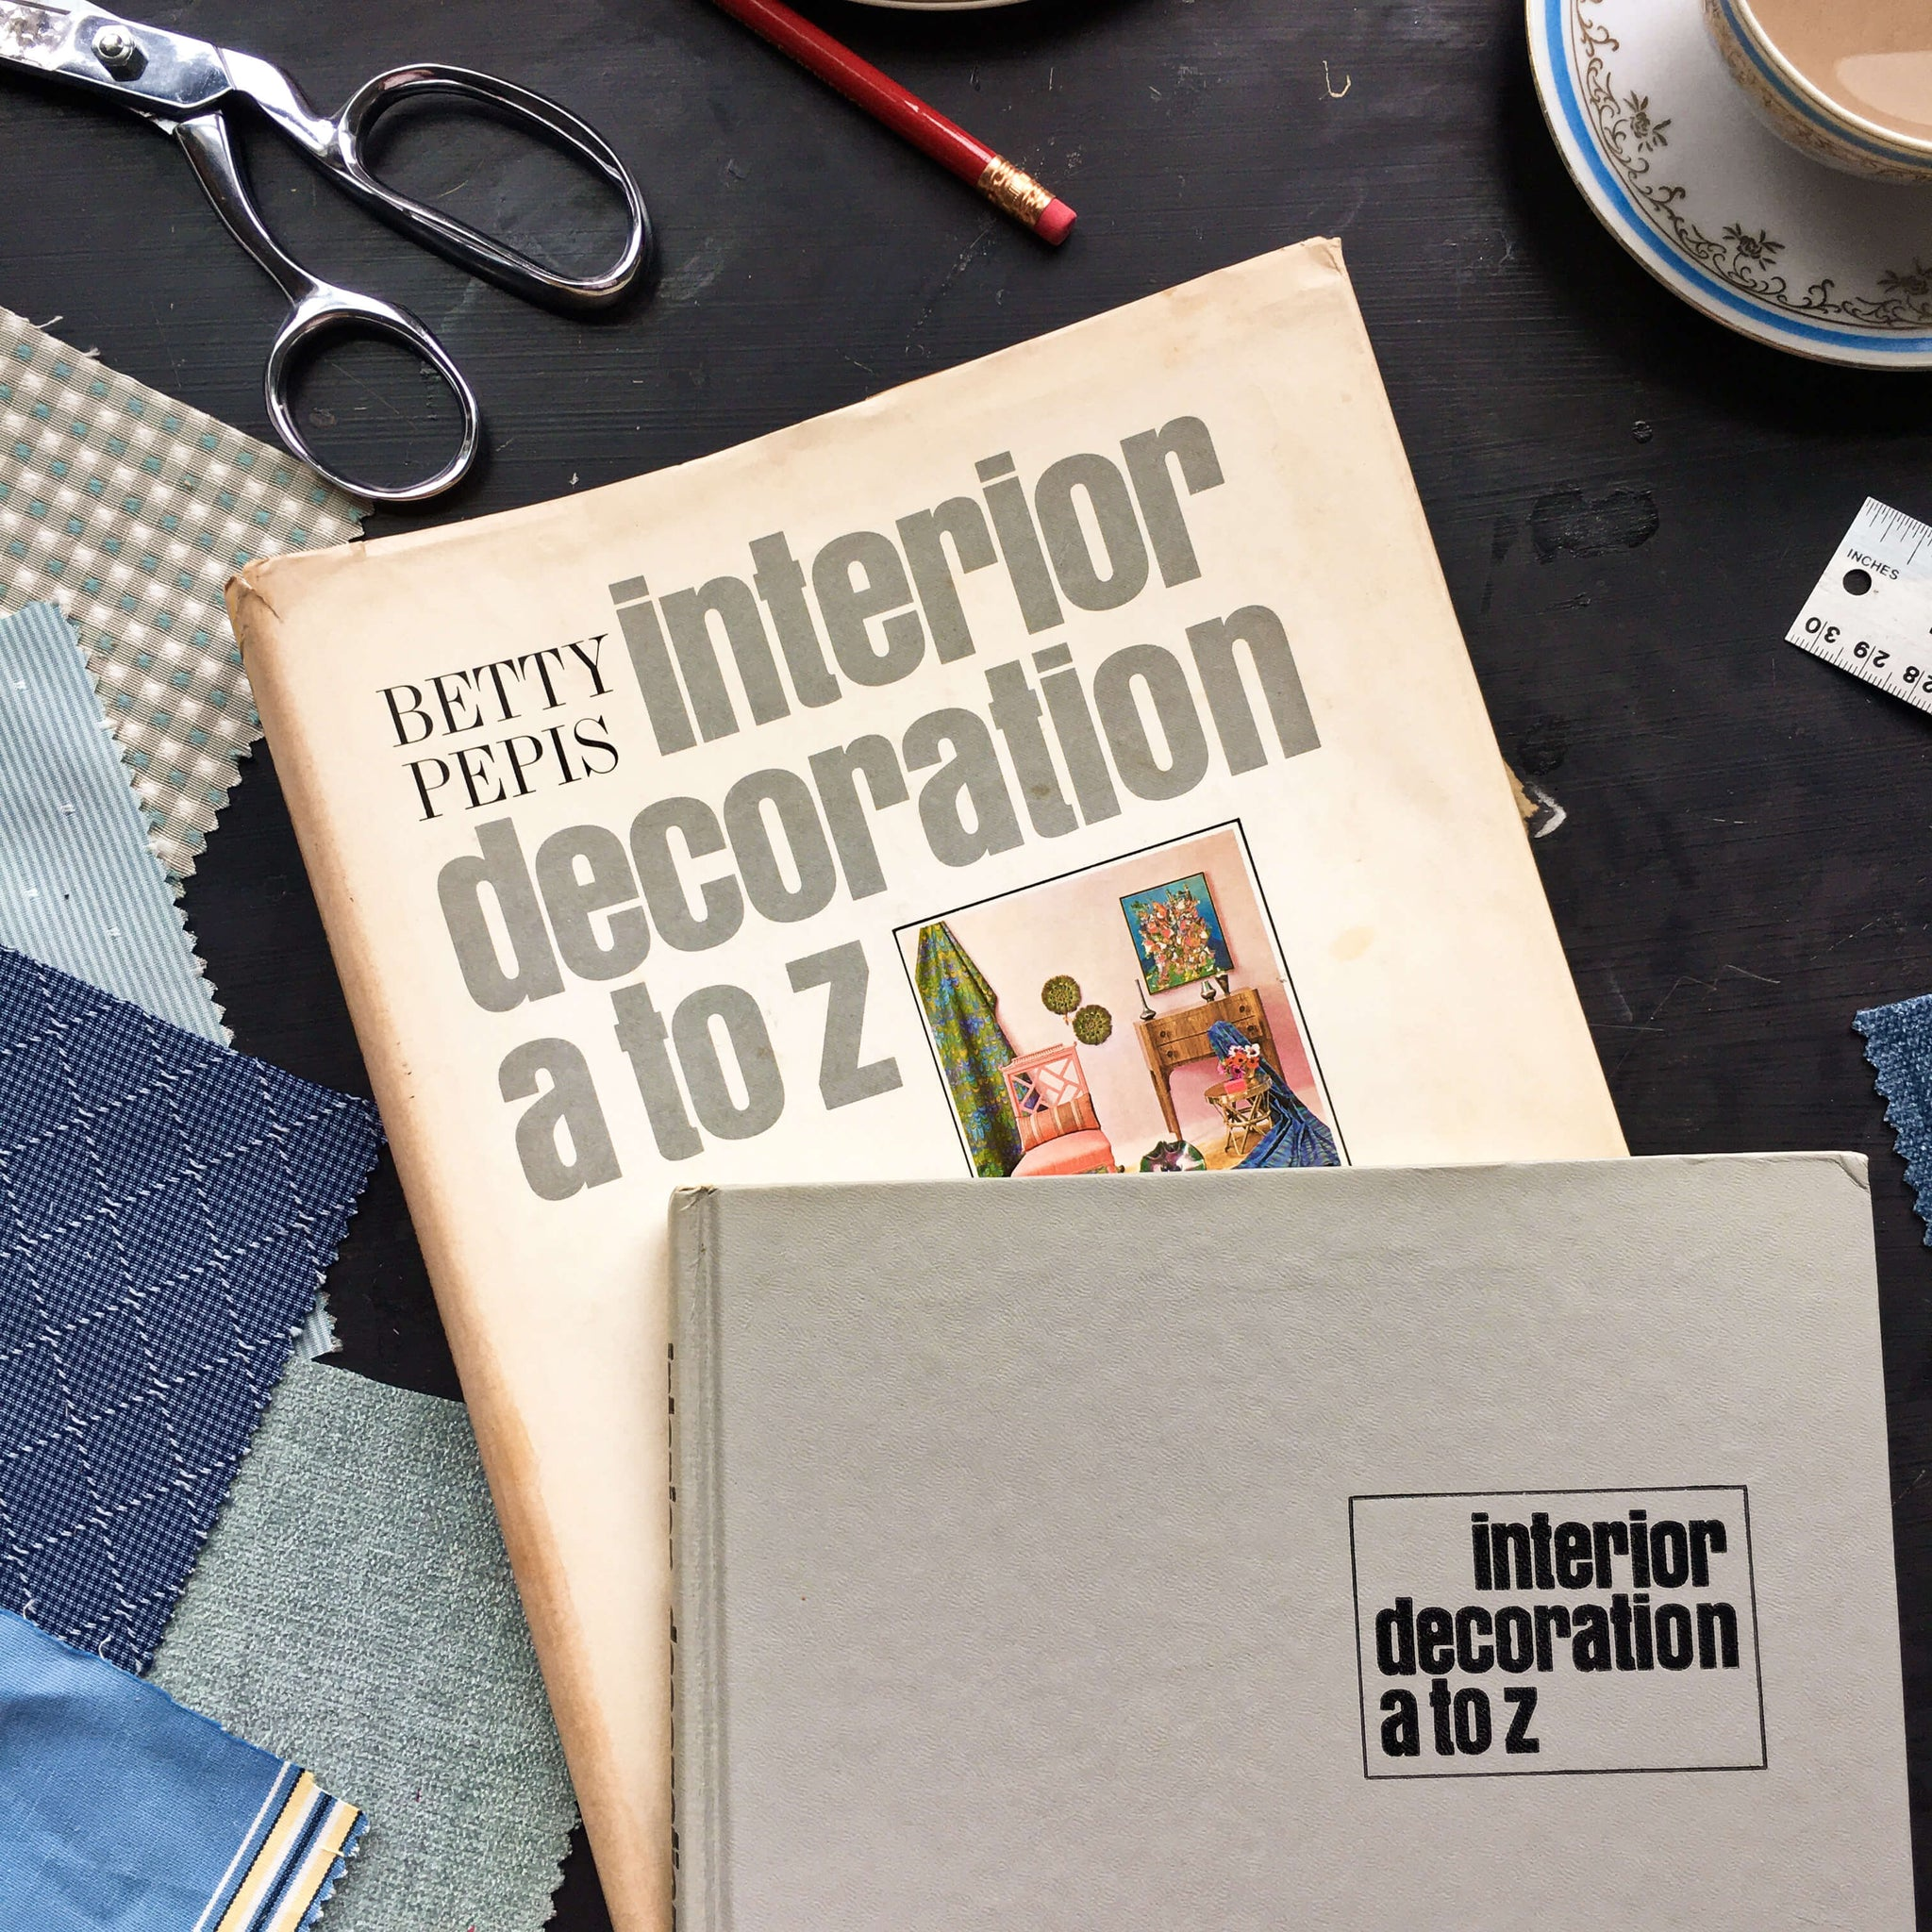 Vintage 1960s Interior Design Book - Interior Decoration A to Z - Betty Pepis - 1965 Edition